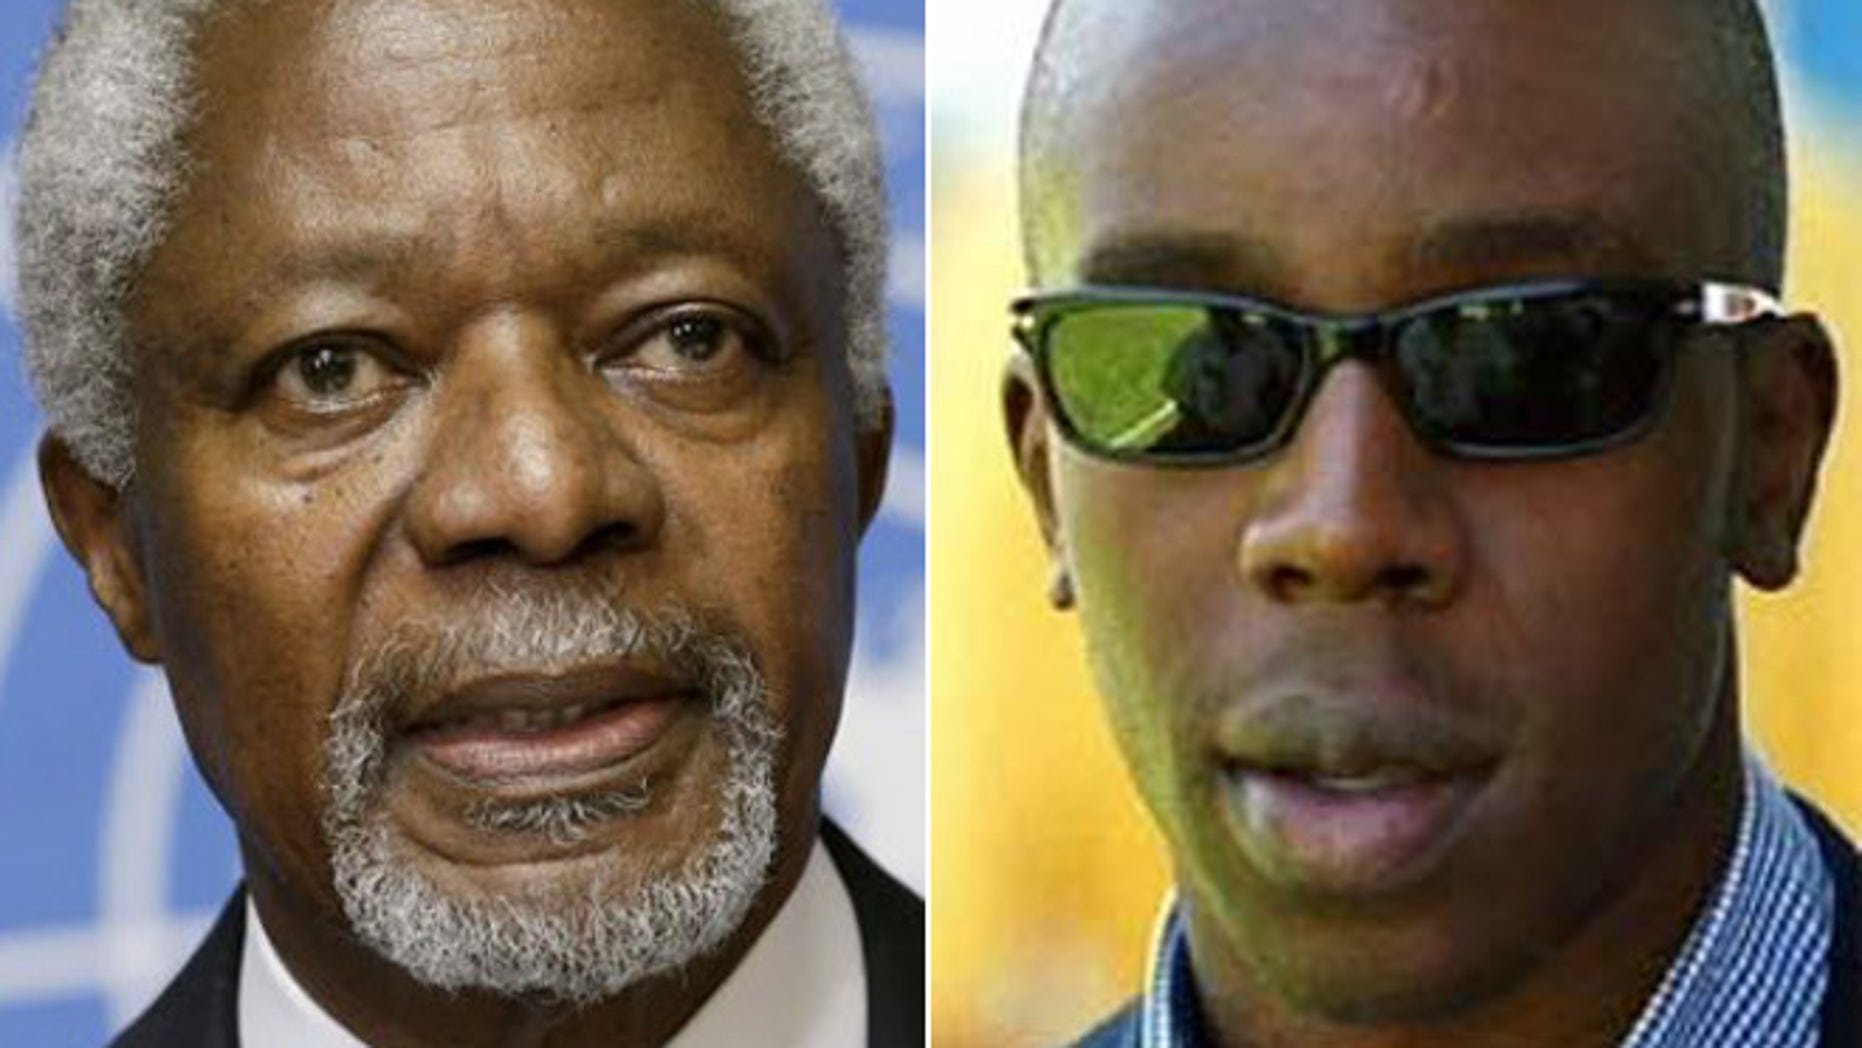 Kofi Annan, (l.), was UN general secretary when his son, Kojo, (r.), was accused of wrongdoing in the oil-for-food program.